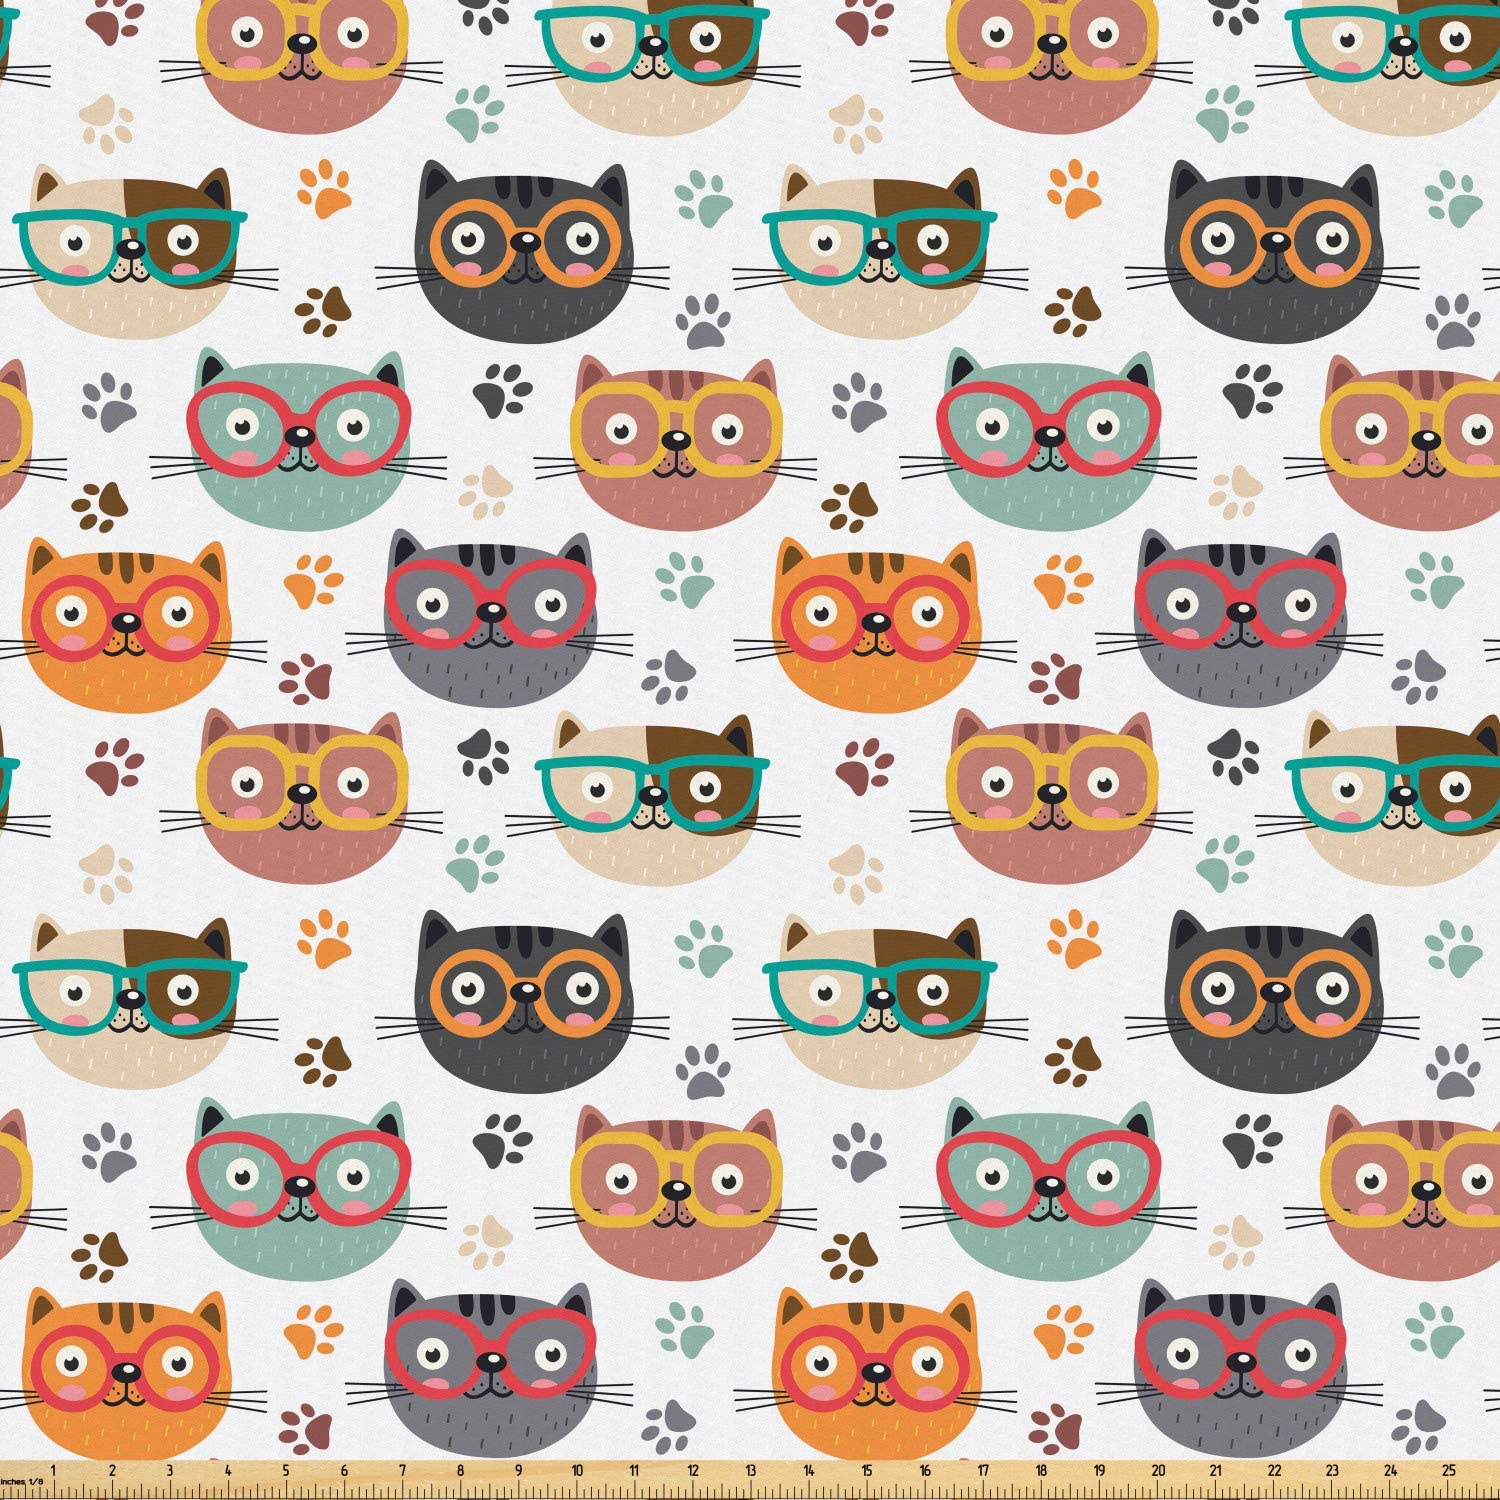 Ambesonne Cats Fabric by The Yard, Pattern with Playful Kitty Faces Wearing Eyeglasses Among Pawprints for Pet Lovers, Microfiber Fabric for Arts and Crafts Textiles & Decor, 1 Yard, Brown White